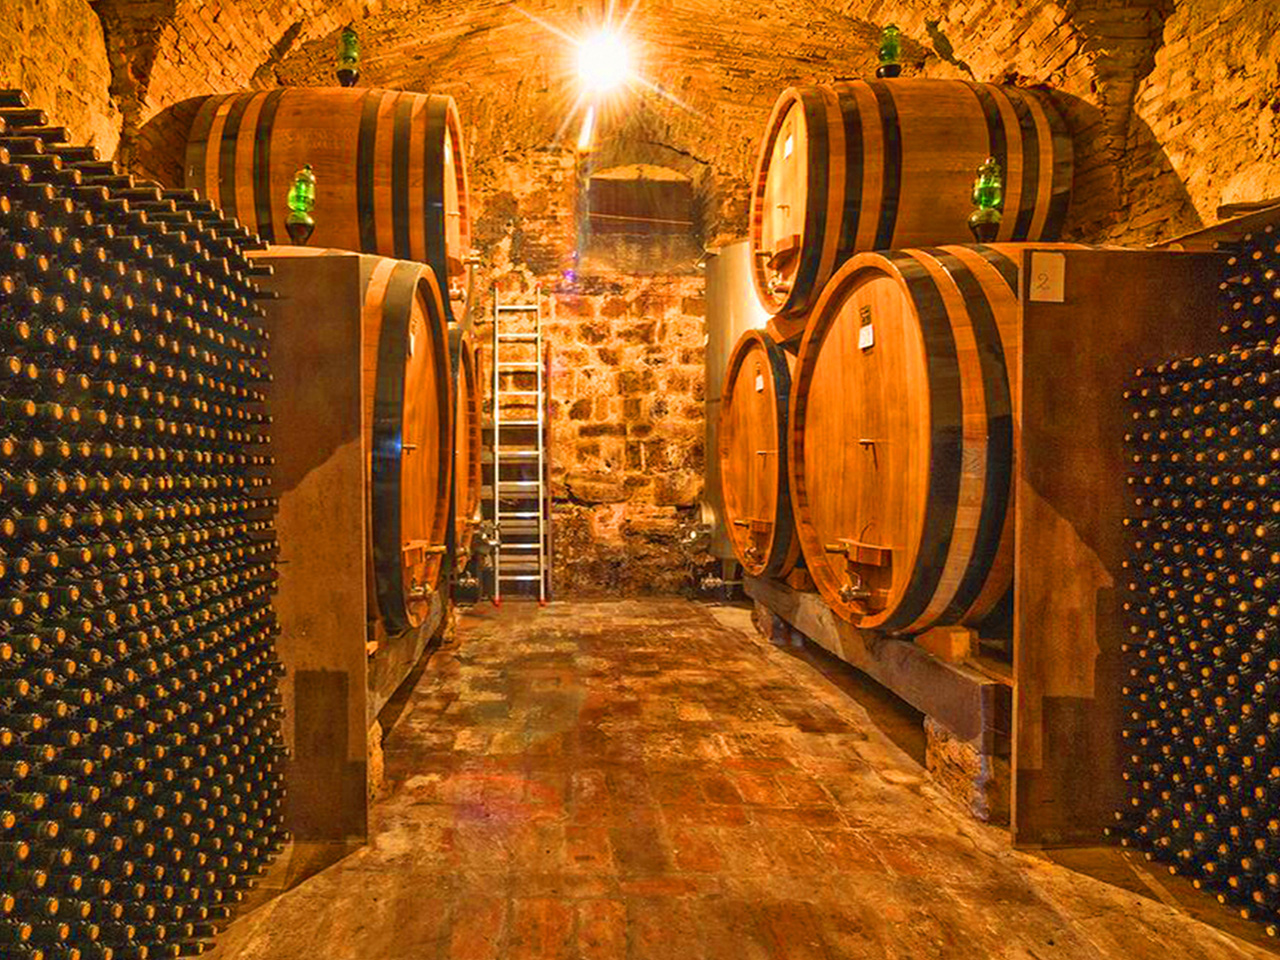 Wine cellars - Foodies Guide to Paris